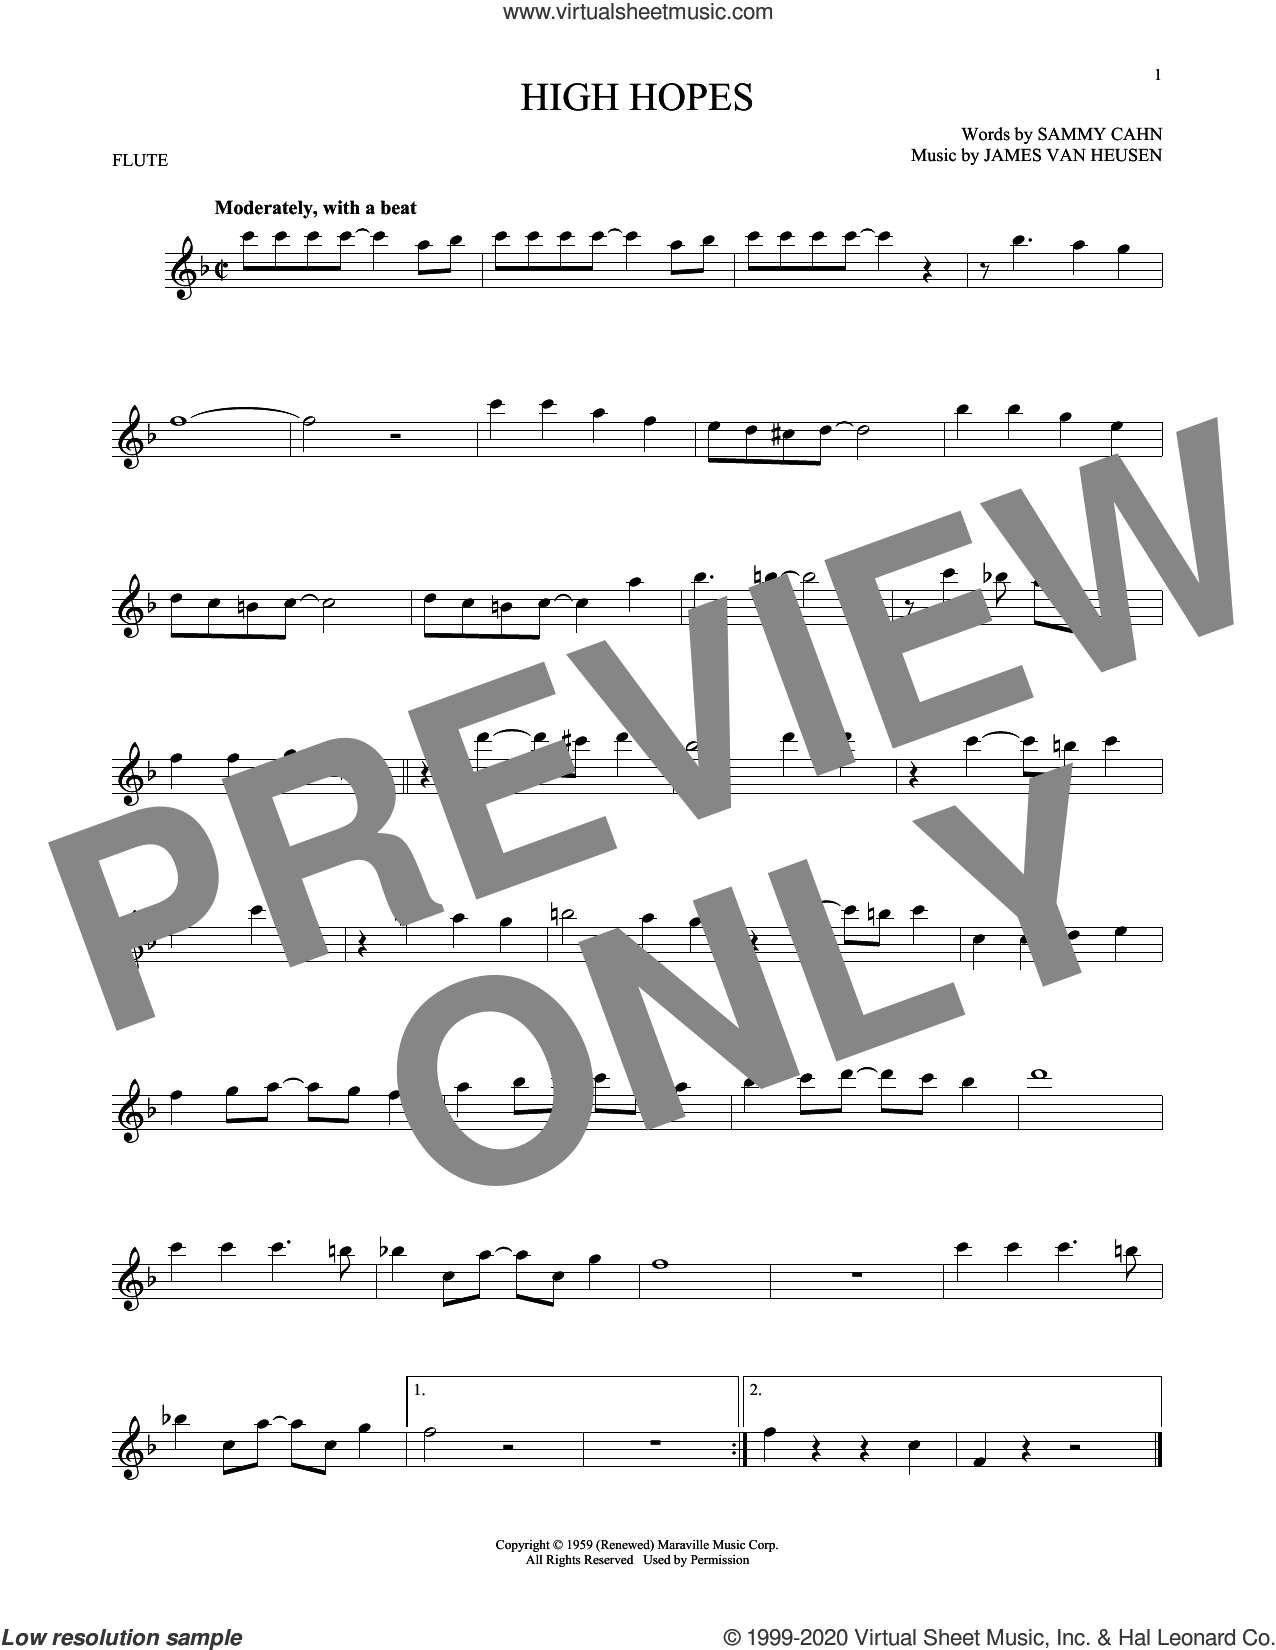 High Hopes sheet music for flute solo by Sammy Cahn and Jimmy van Heusen, intermediate skill level